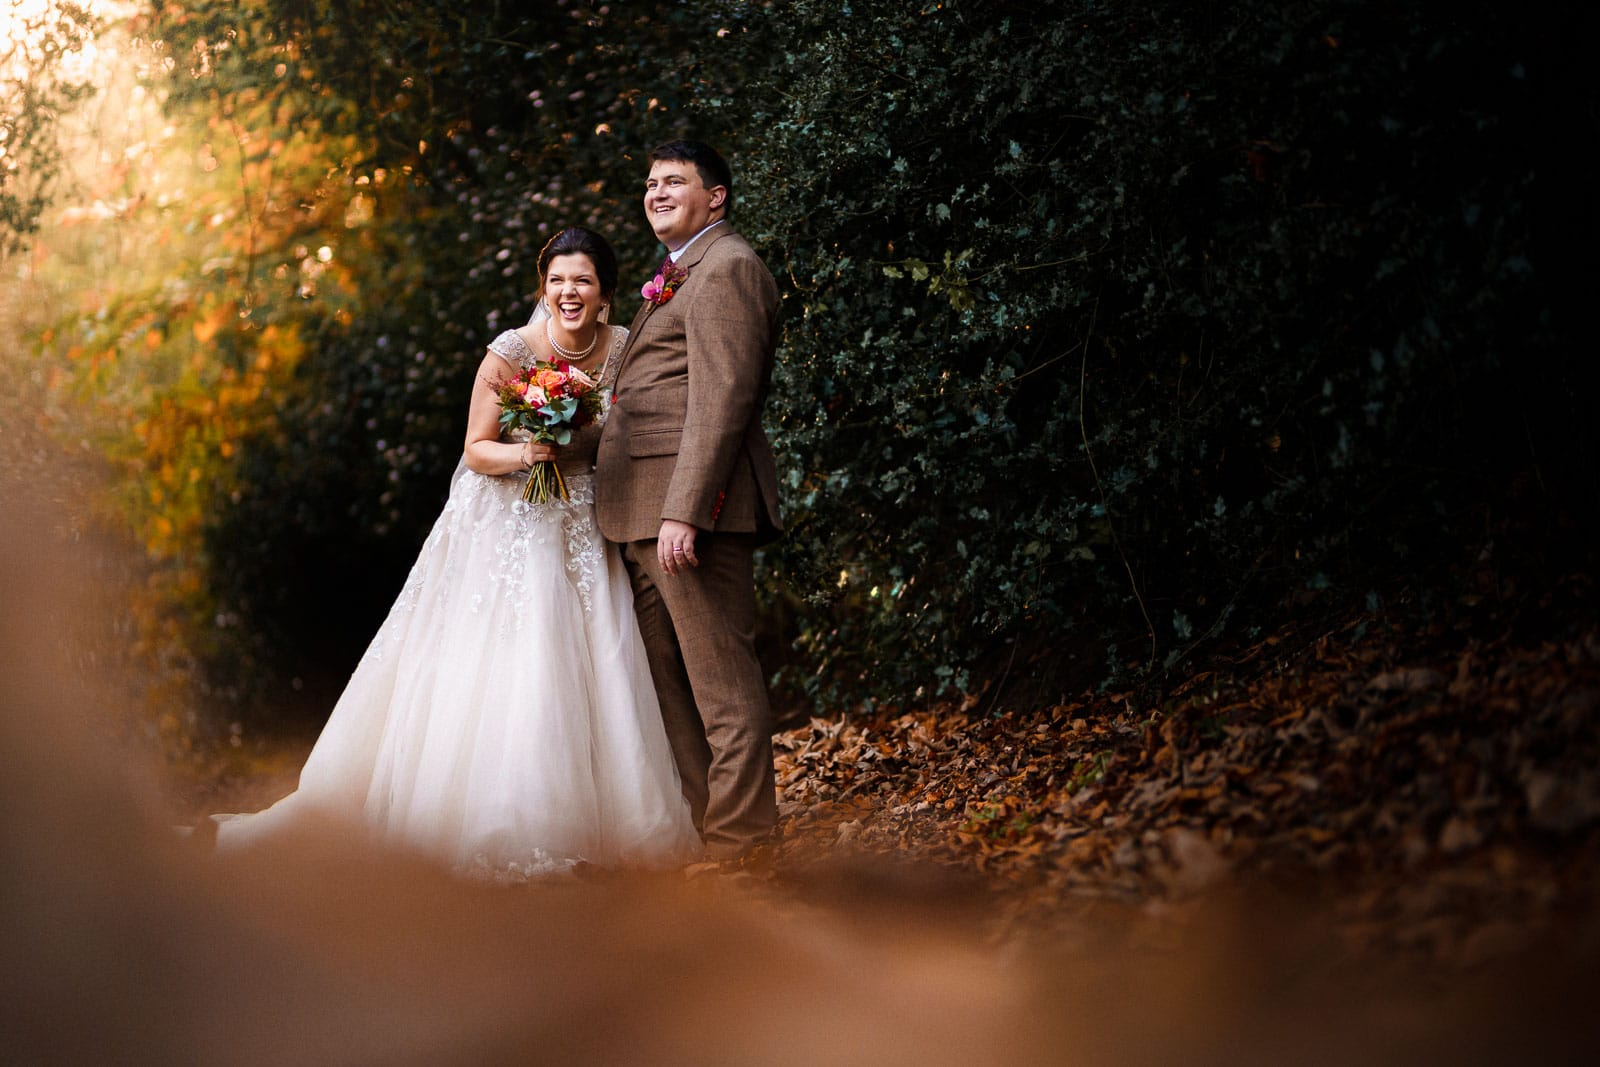 Autumnal wedding scene. Falling leaves and a bride and groom